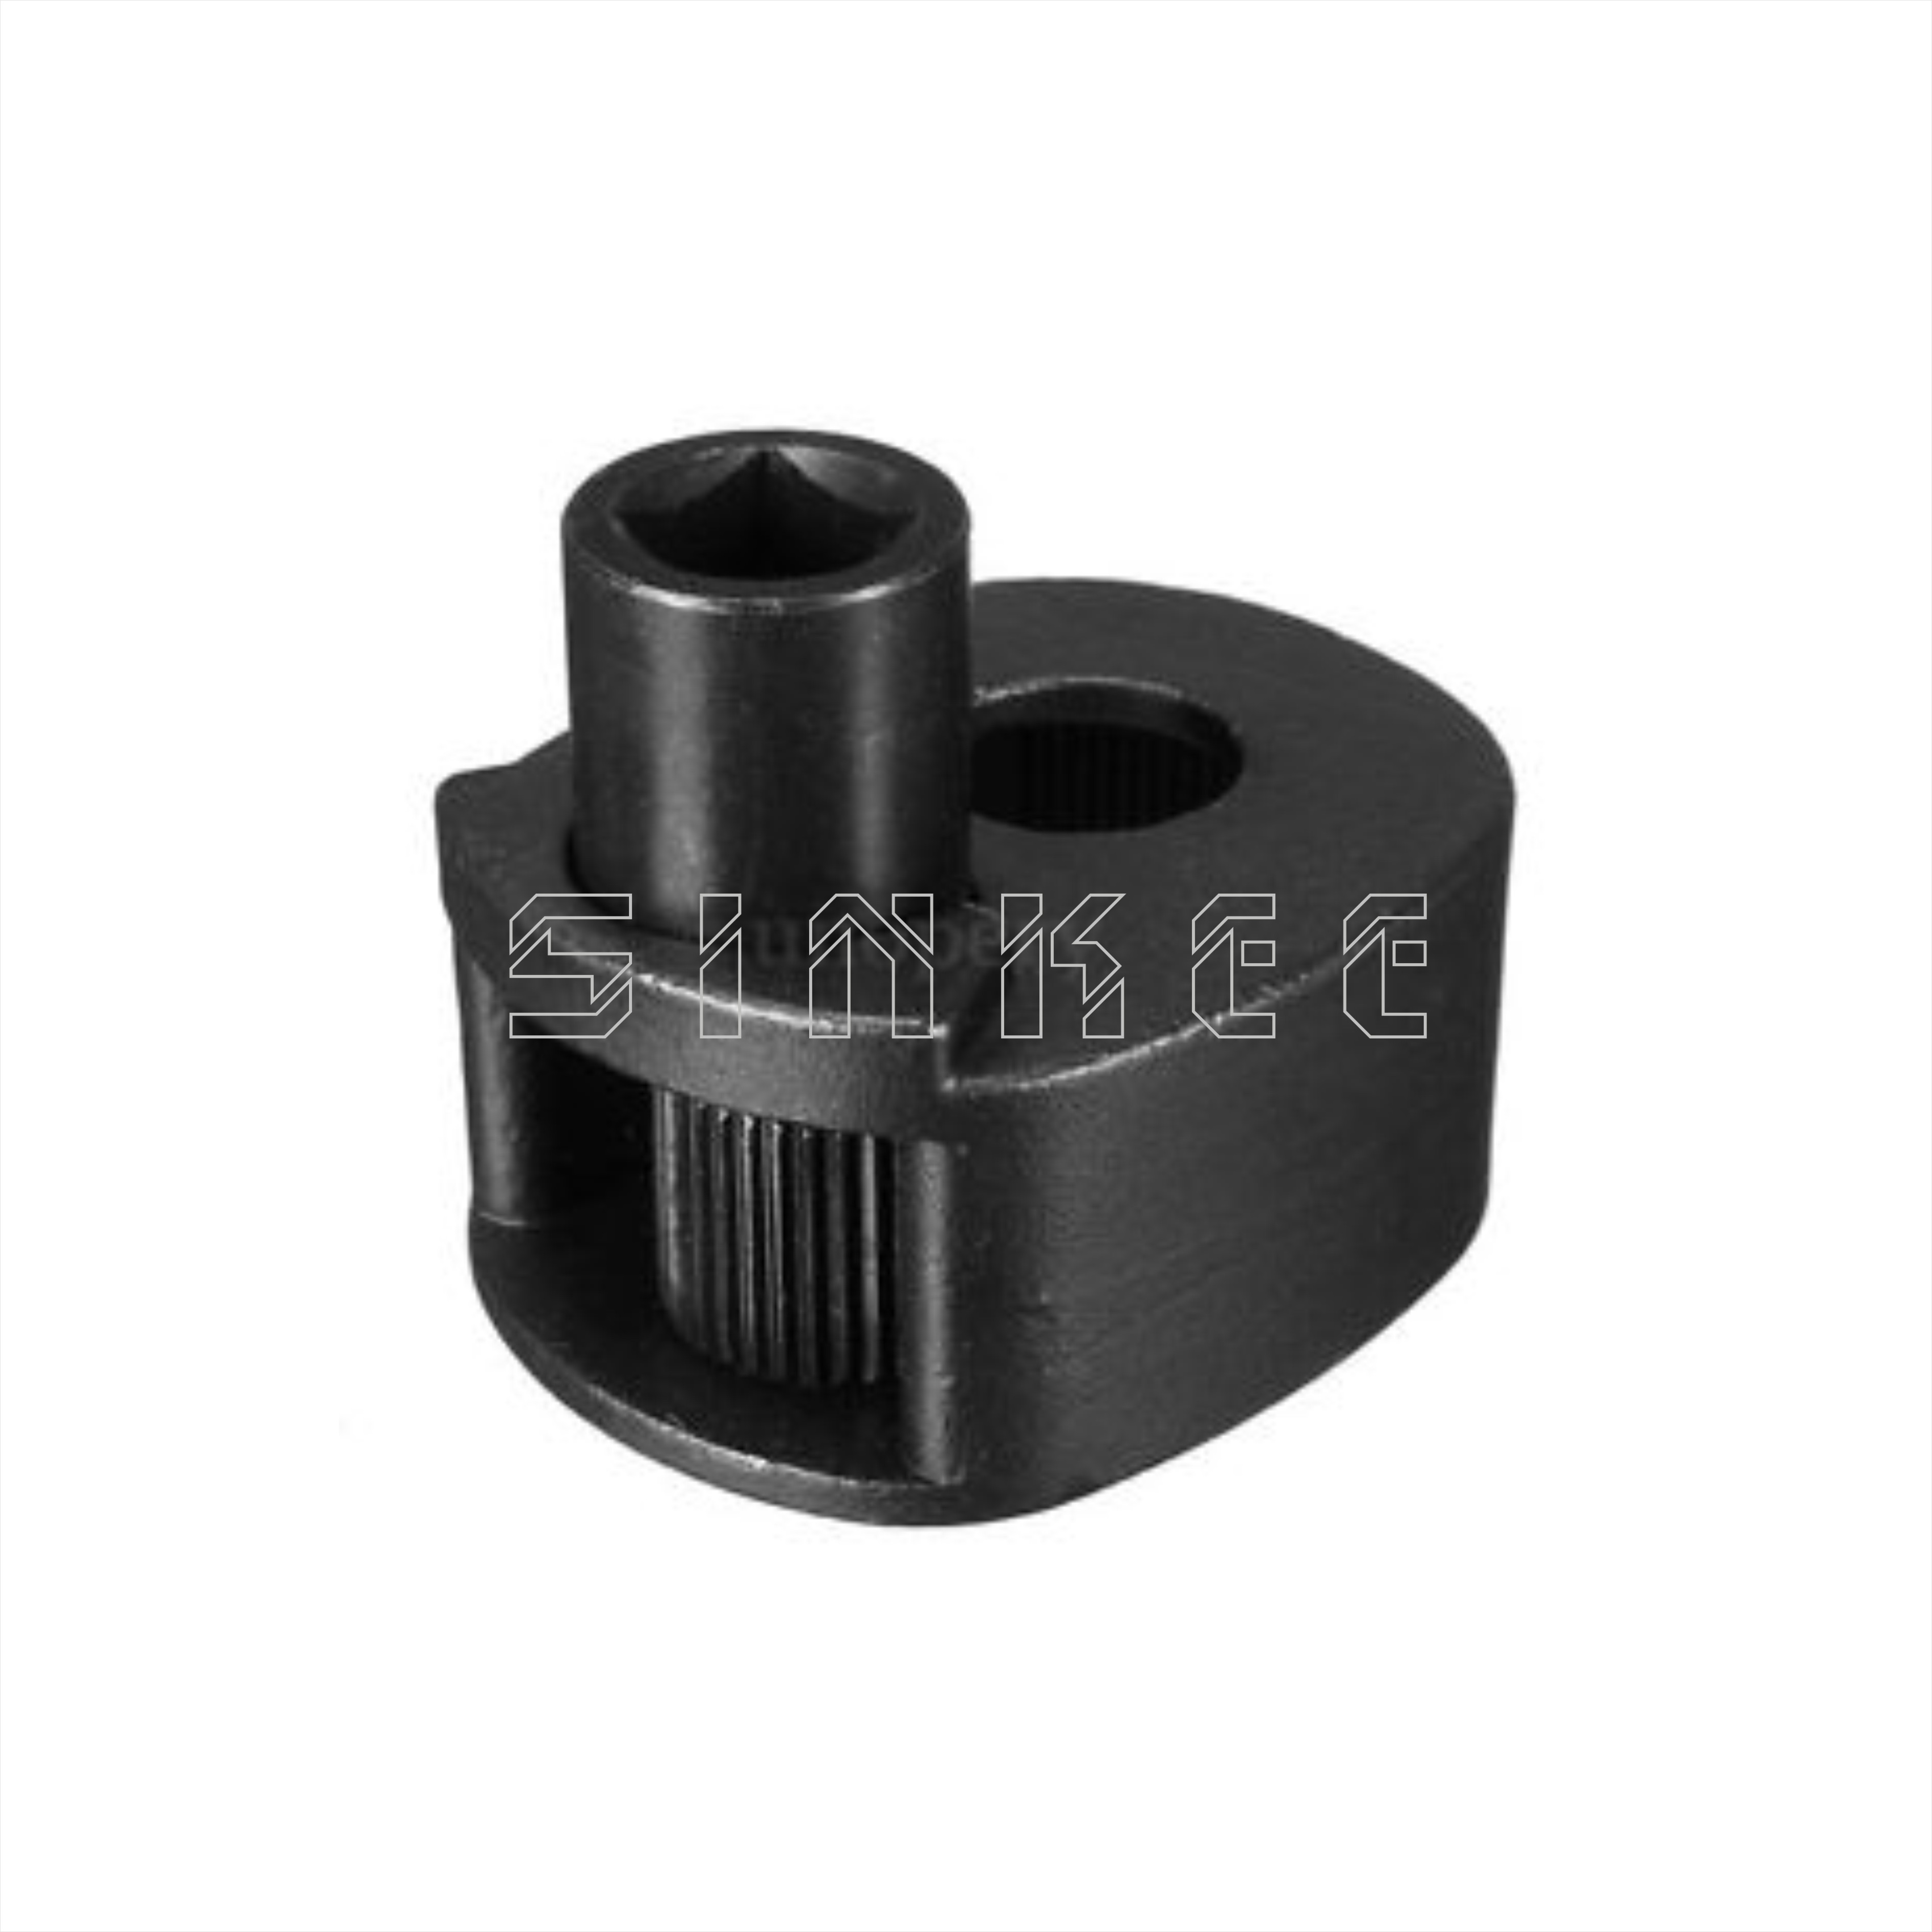 Universal Tie Rod Wrench 33mm - 42mm removal tool Tie Rod End Car